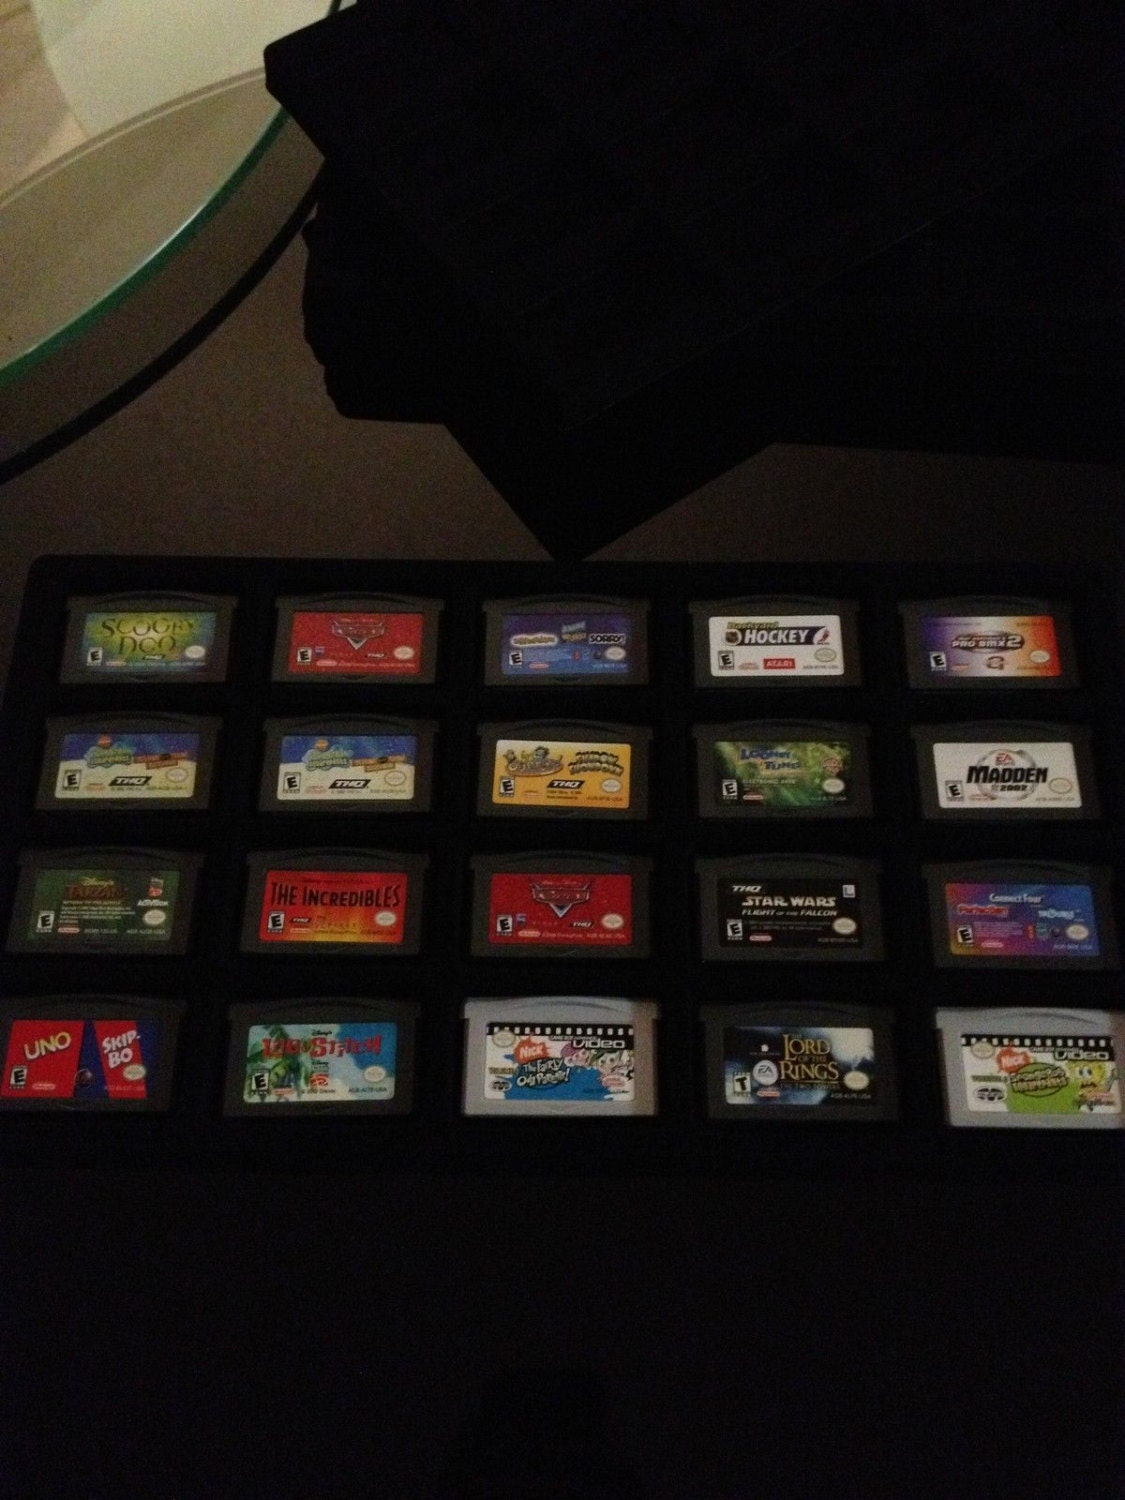 Nintendo Gameboy Gba Advance Display Tray Case Inserts